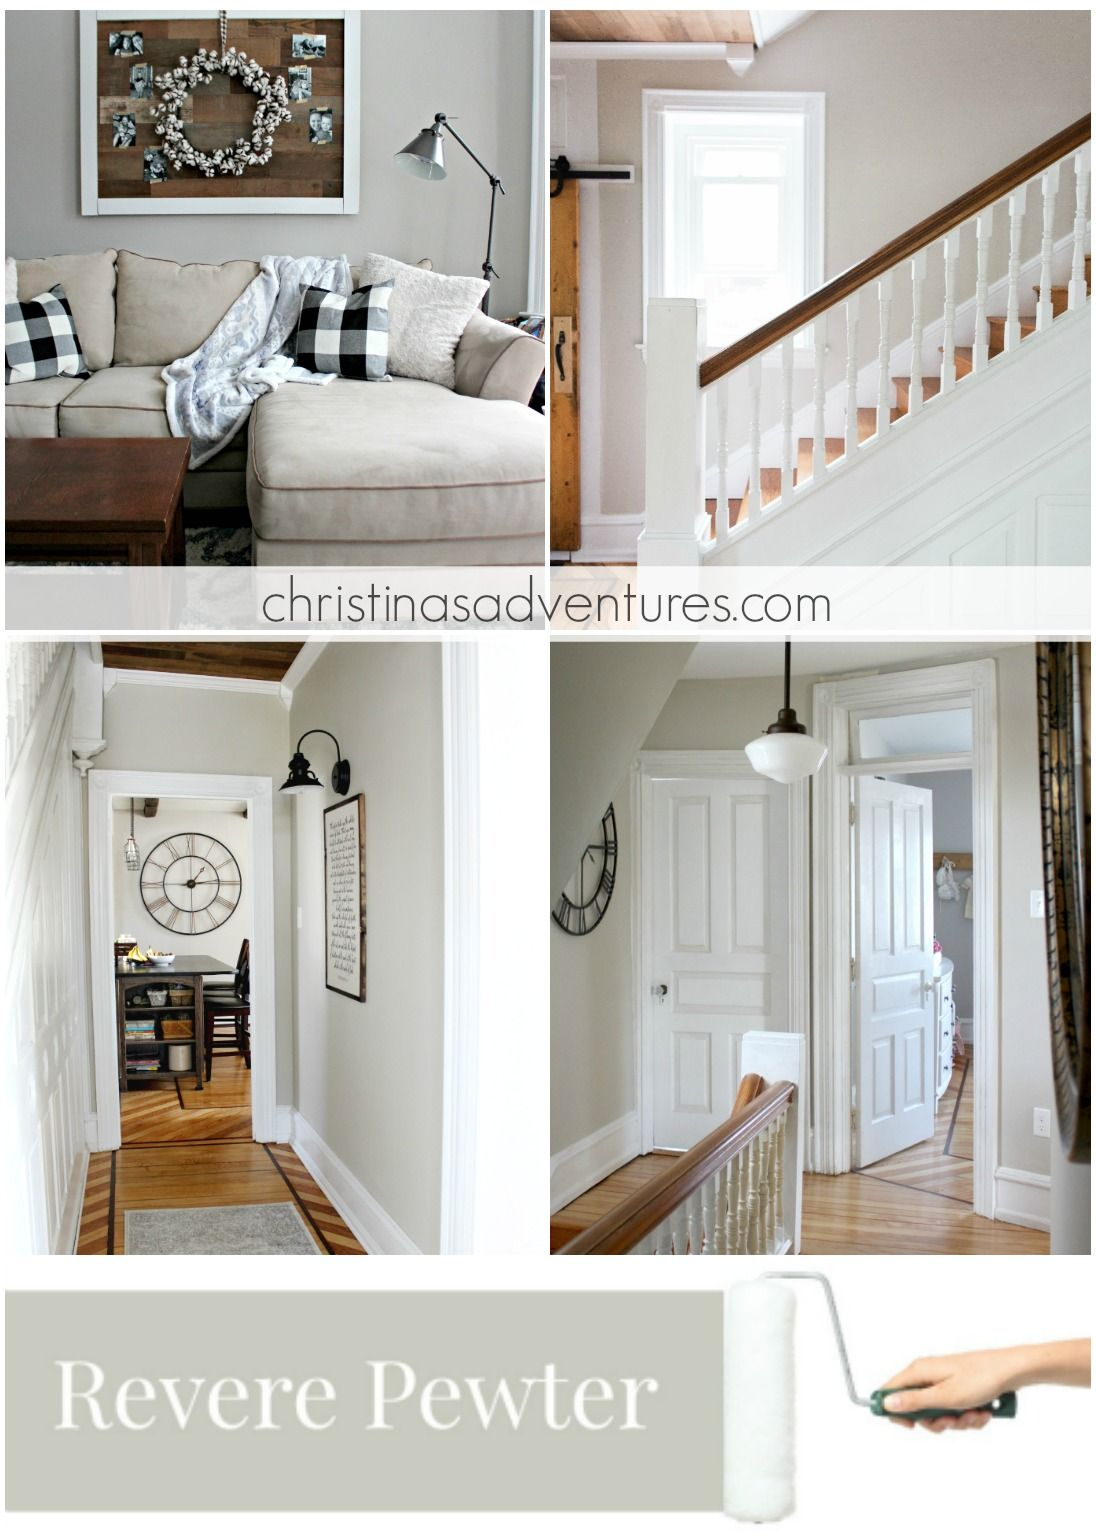 Our house modern farmhouse paint colors farmhouse paint for Farmhouse paint colors interior